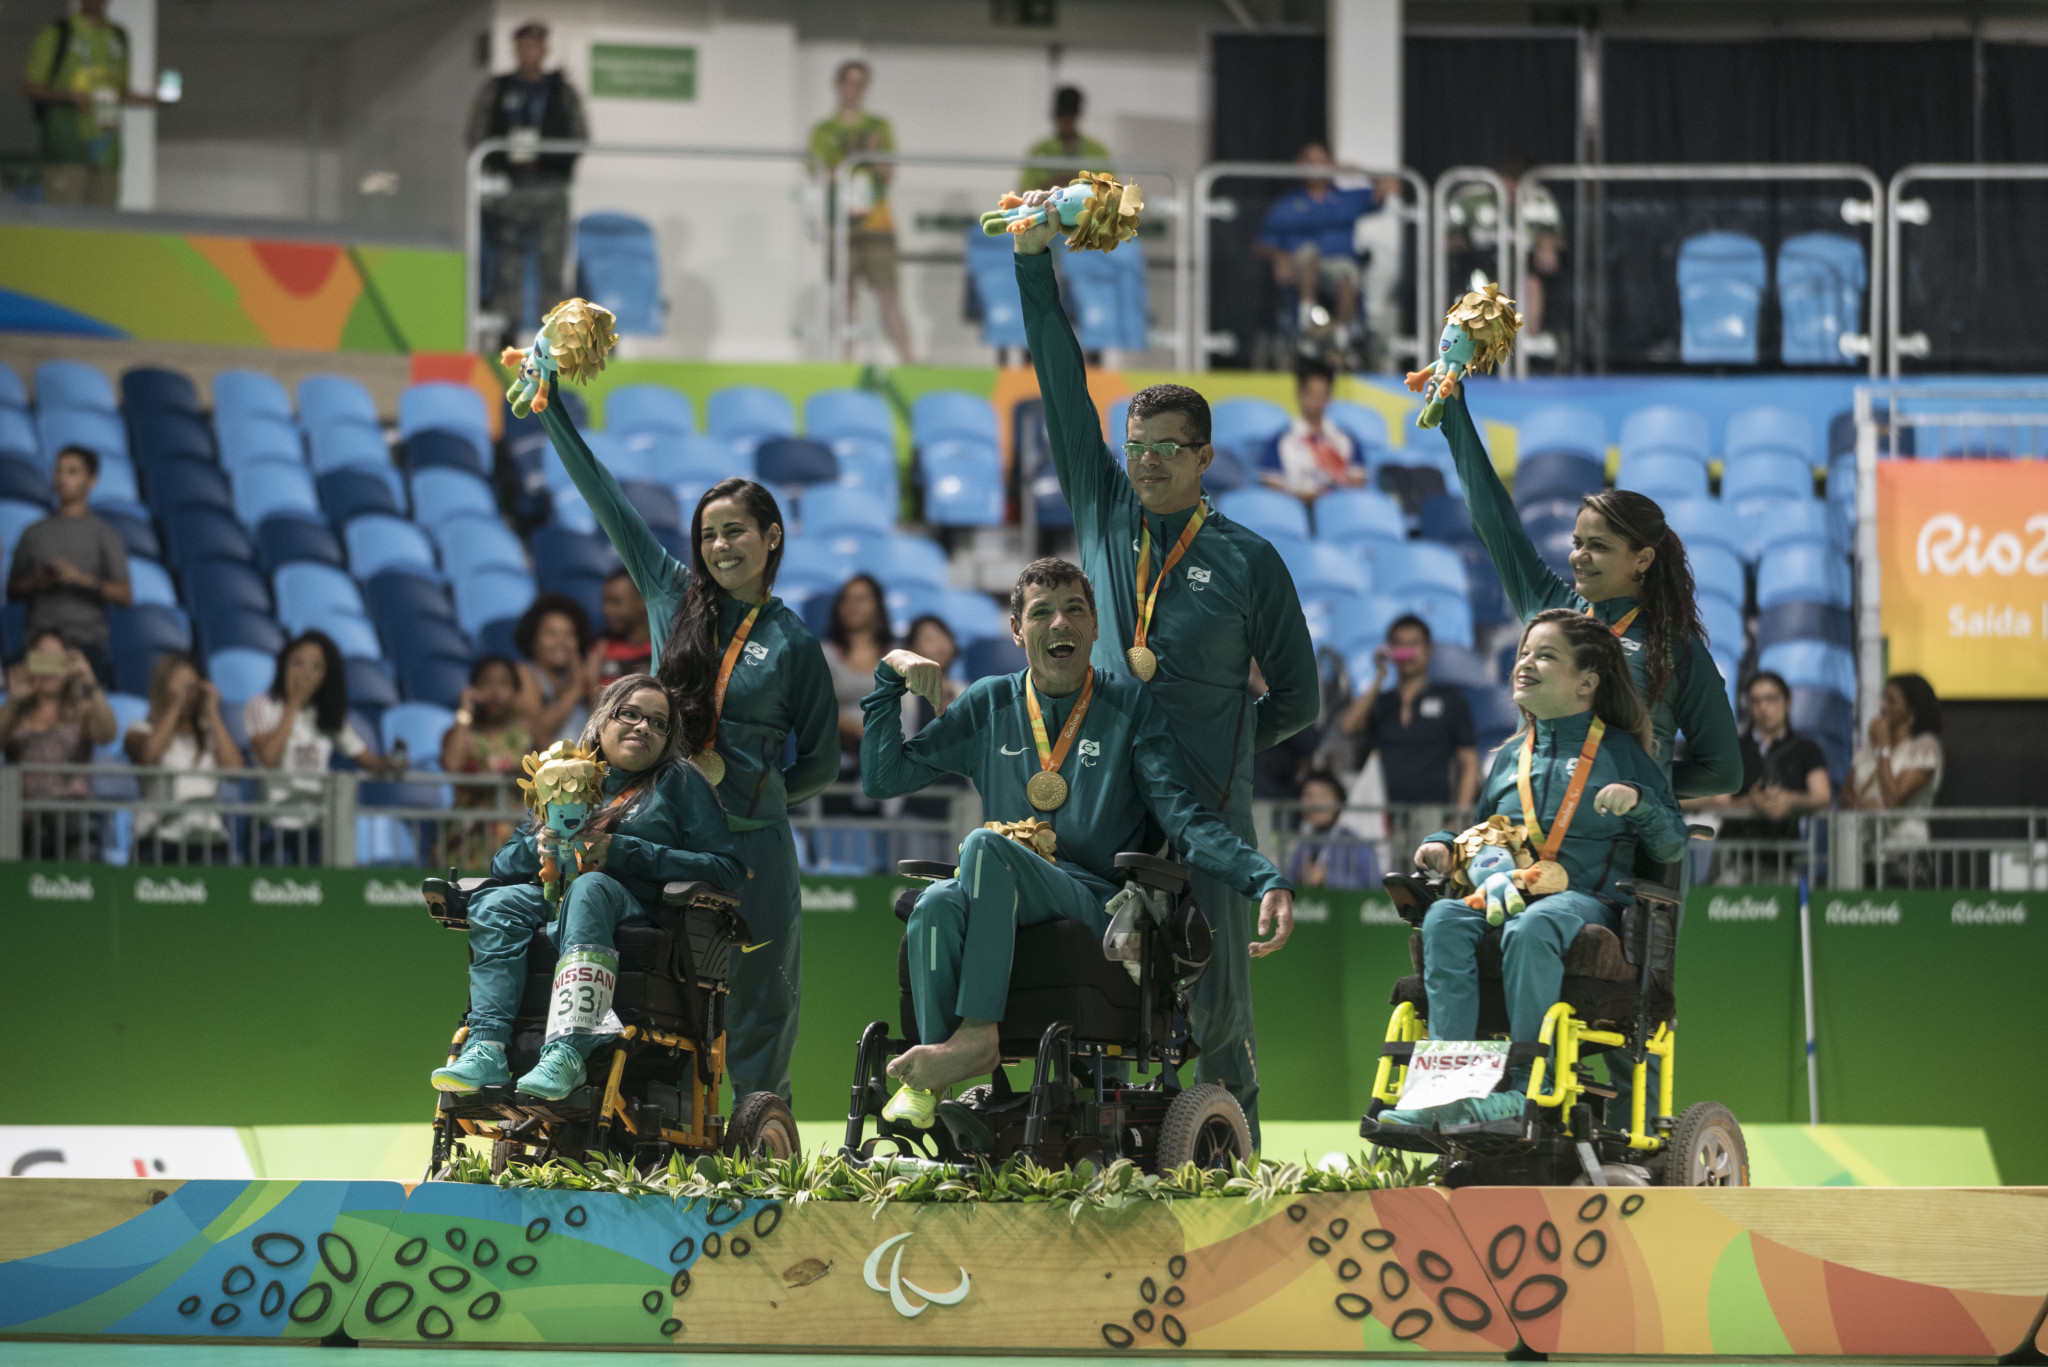 Boccia International Sports Federation publish rules on female participation